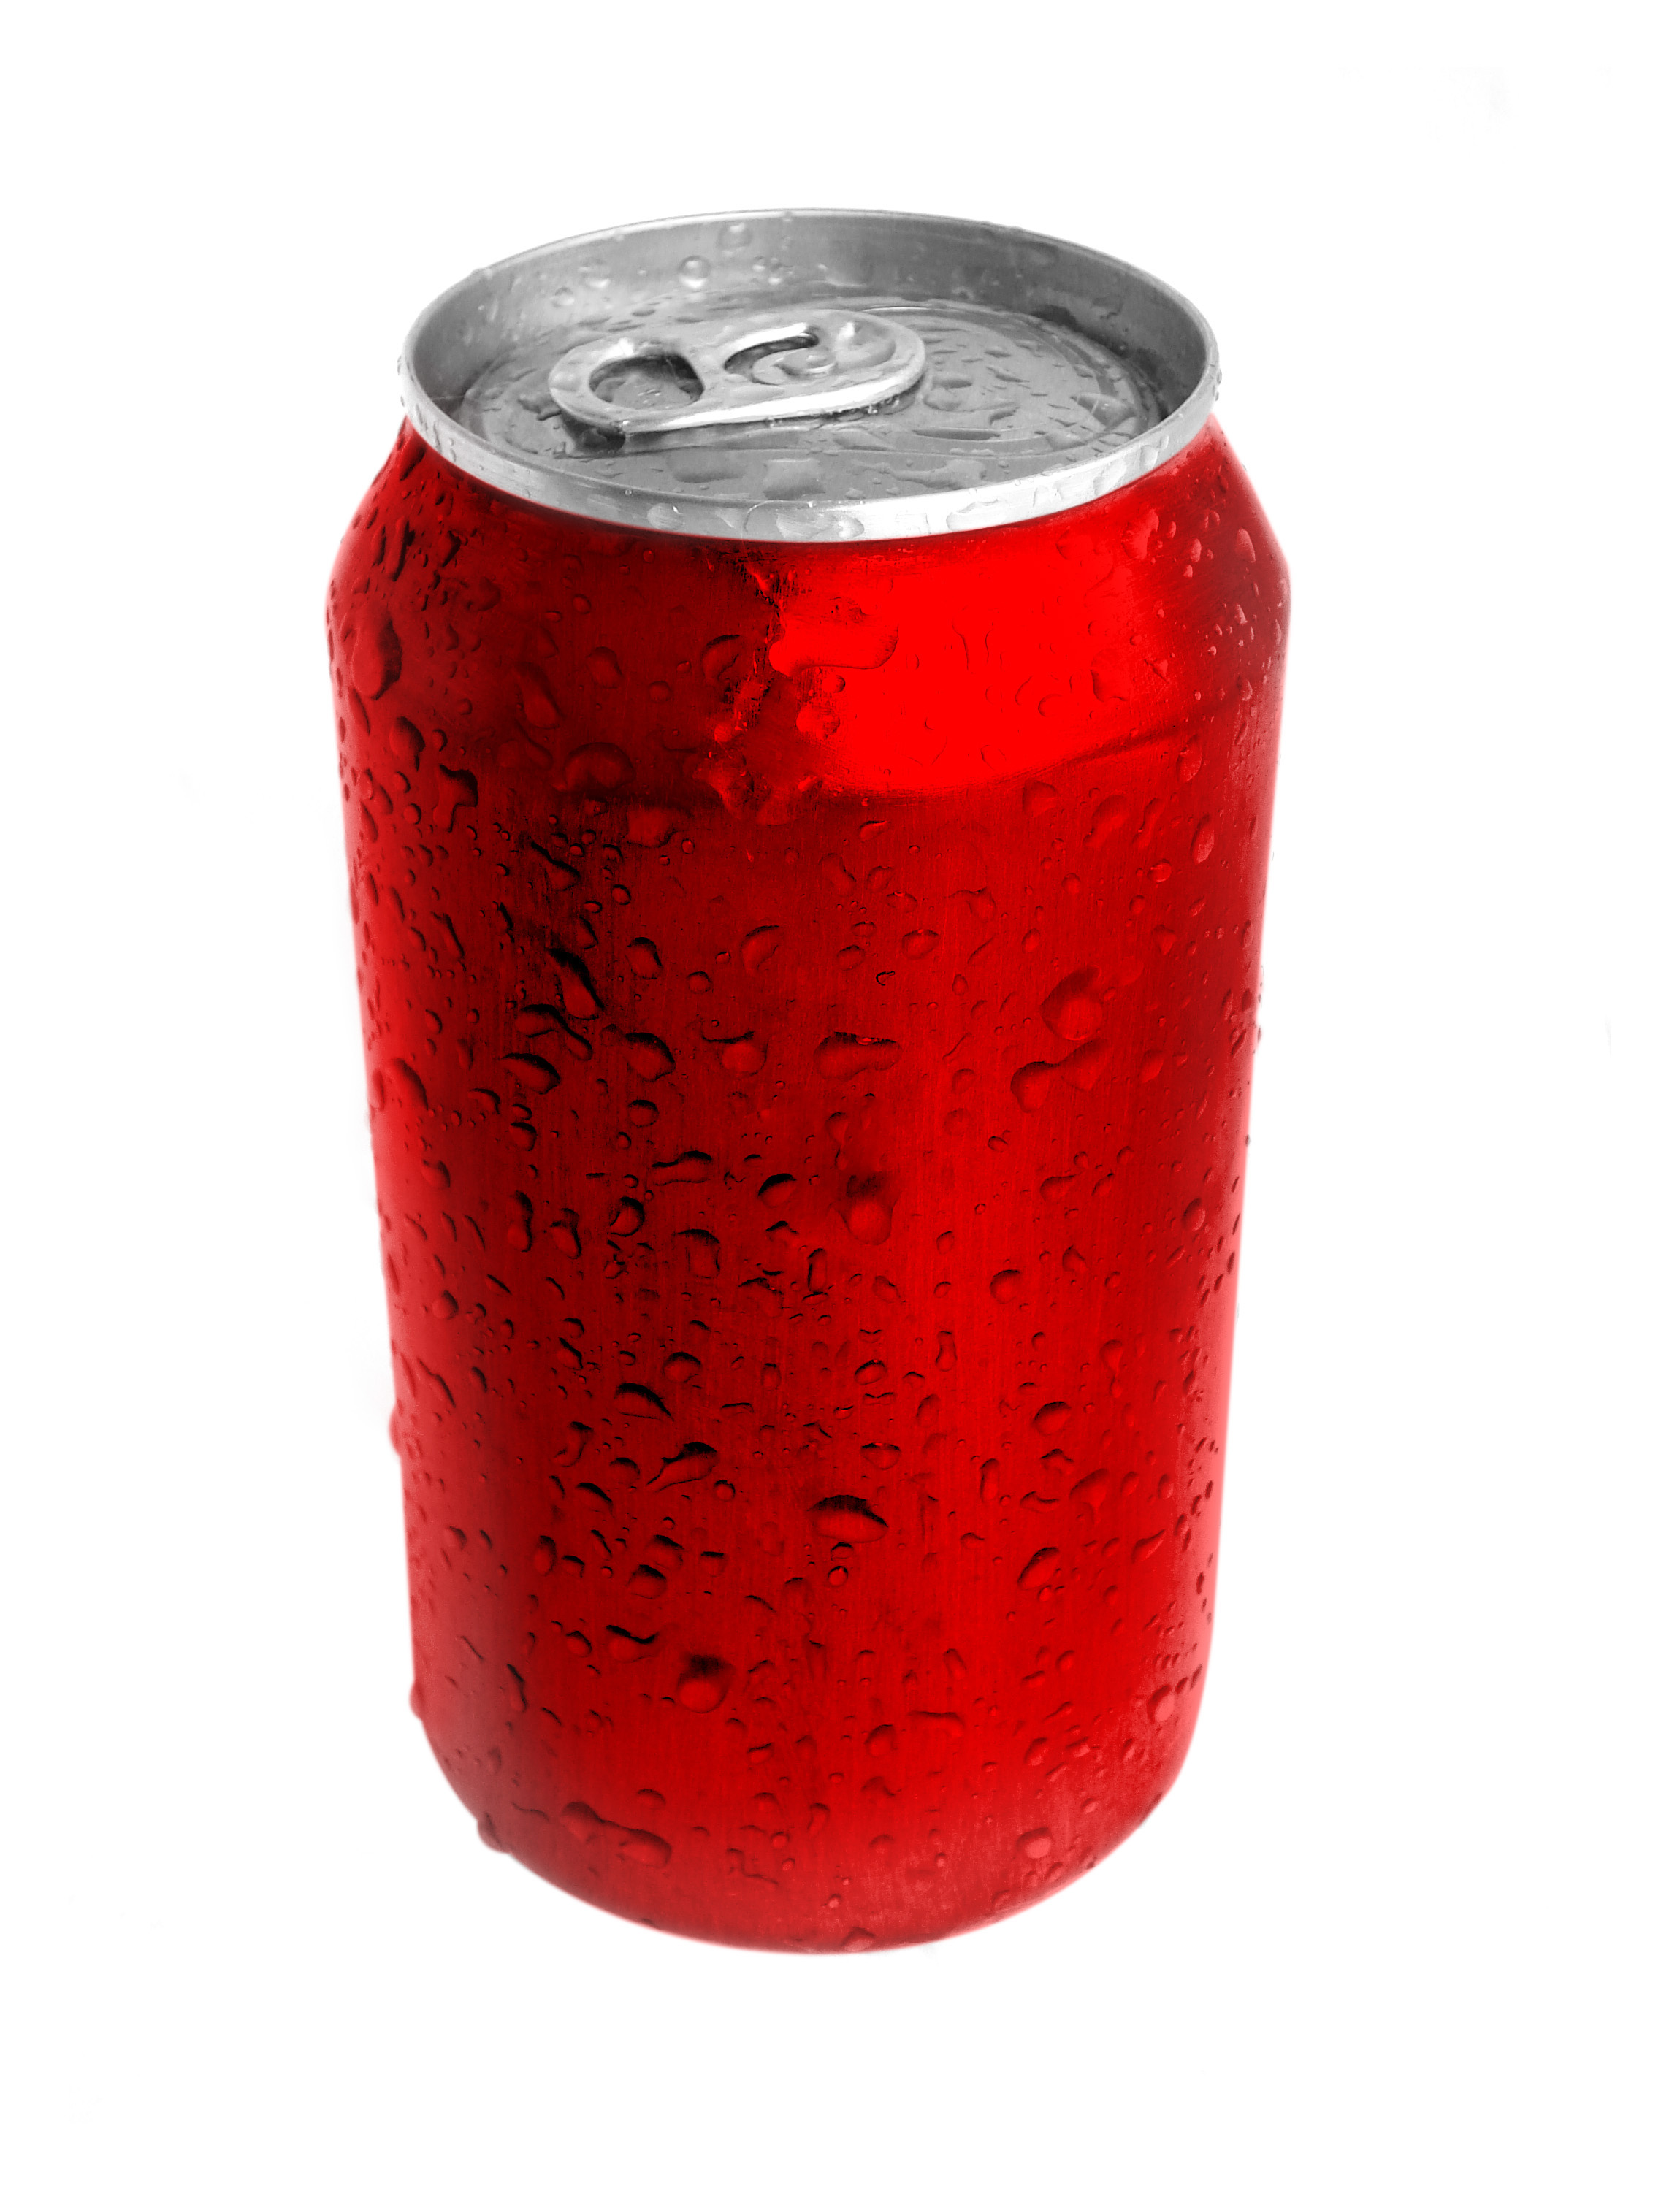 soda can pics4learning